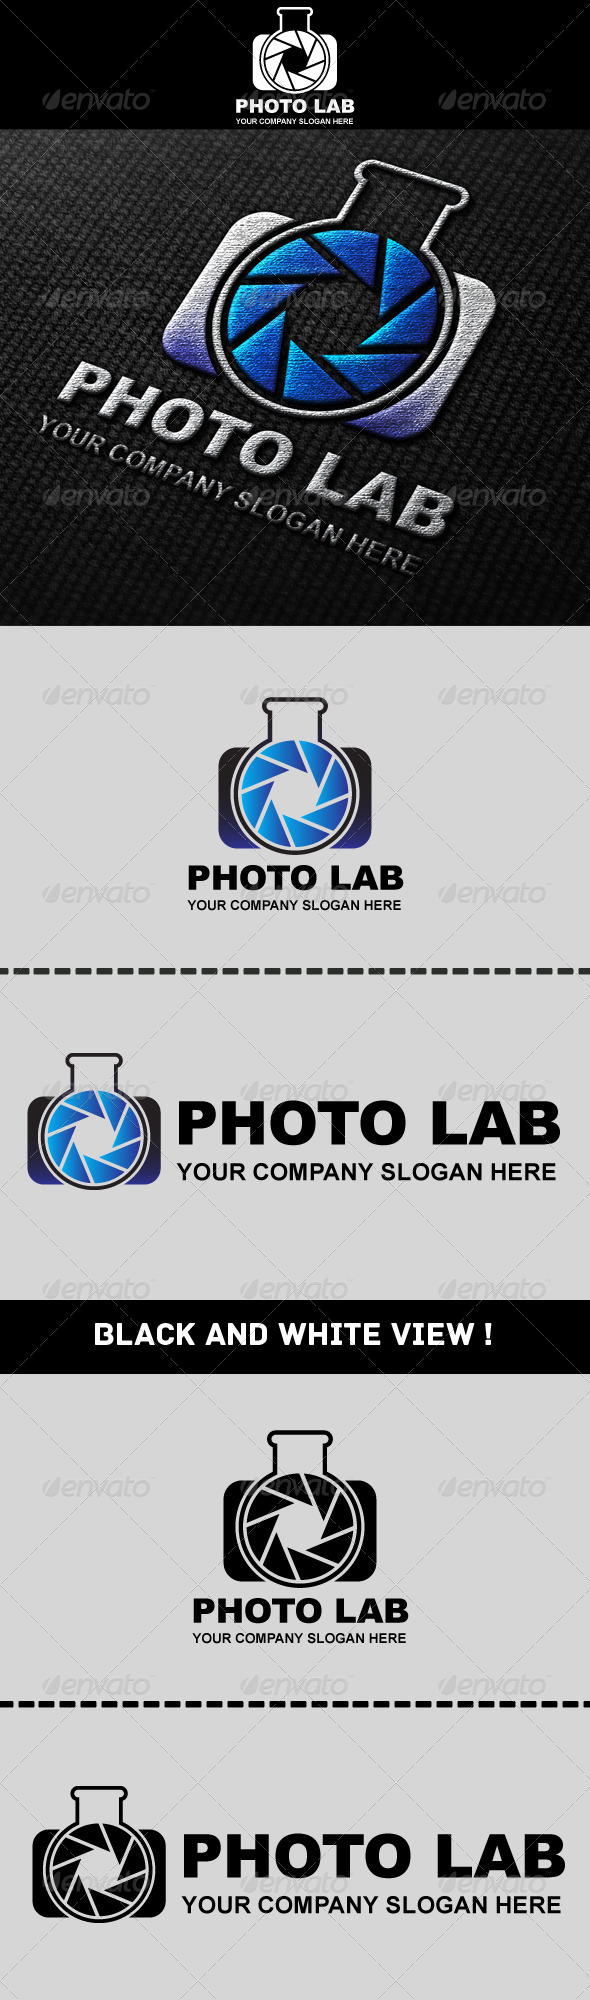 Photo Laboratory Logo